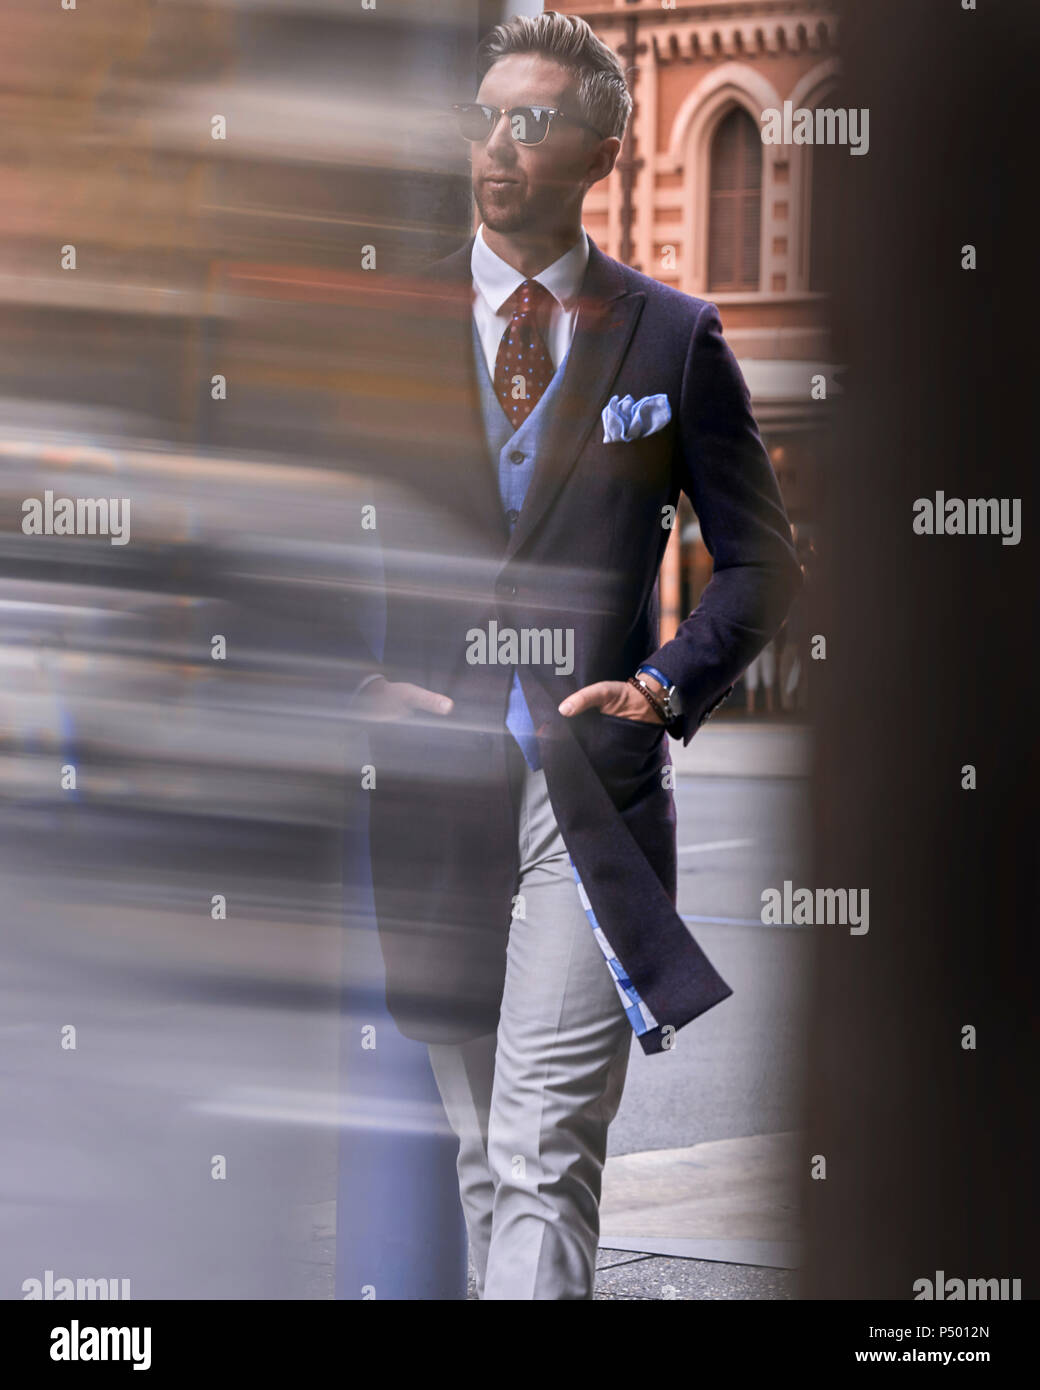 Fashion blogger Steve Tilbrook marcher dans la ville Photo Stock